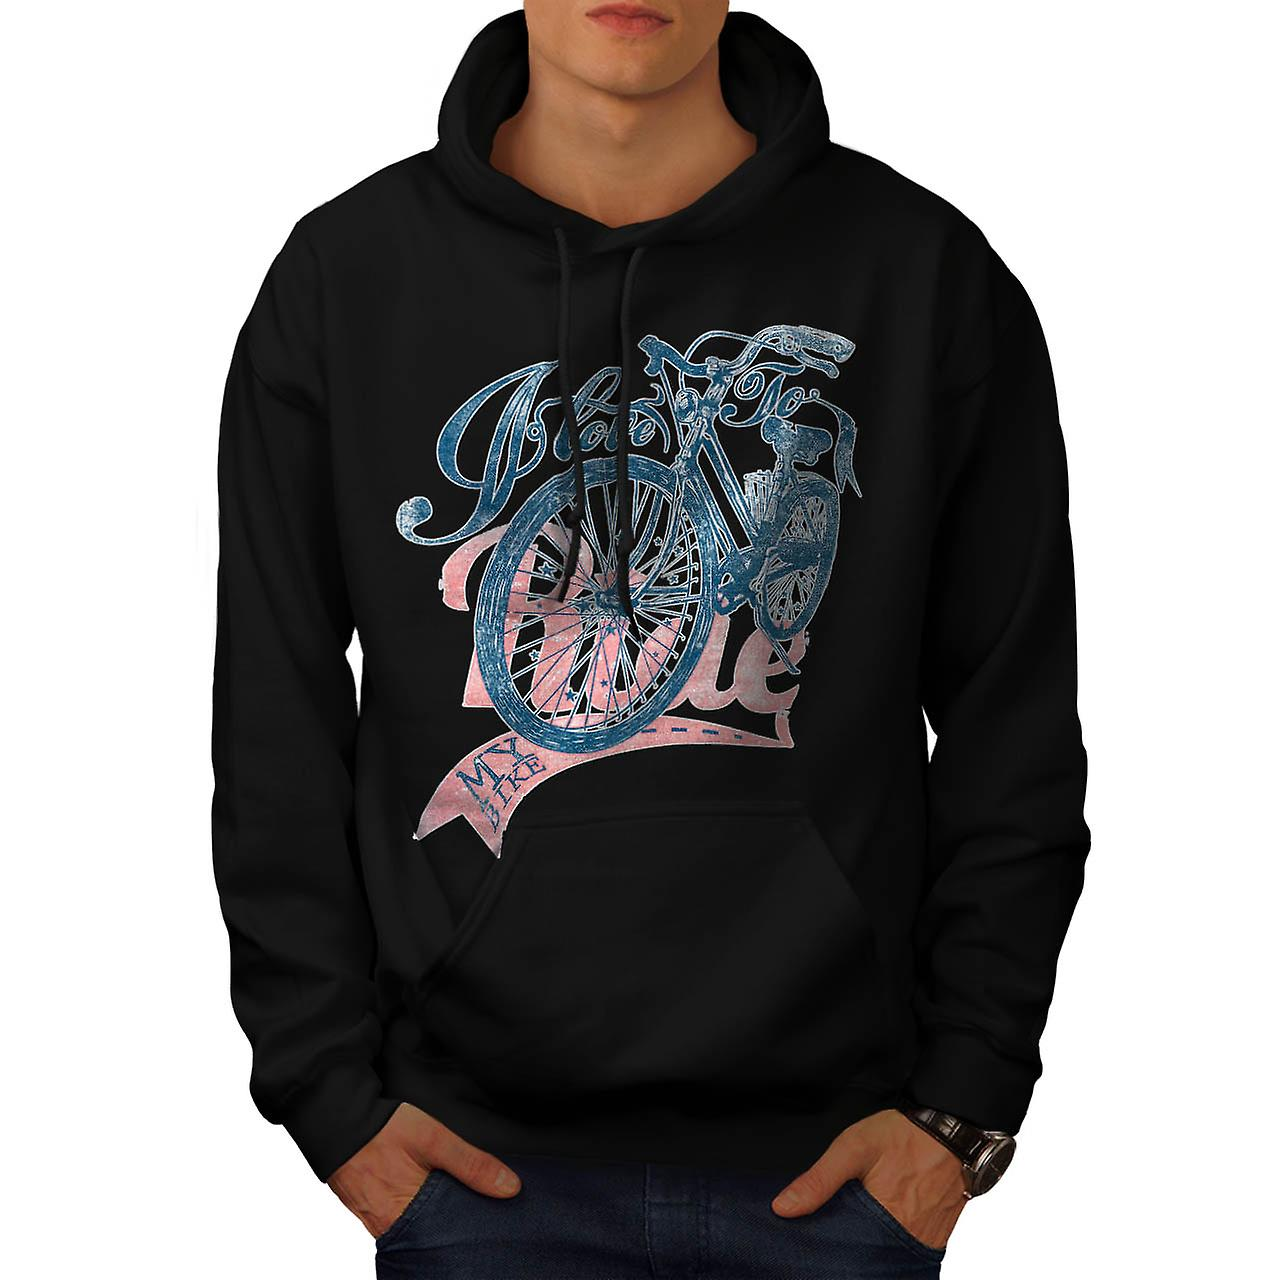 Love To Ride Cycling Bike Pedal Men Black Hoodie | Wellcoda